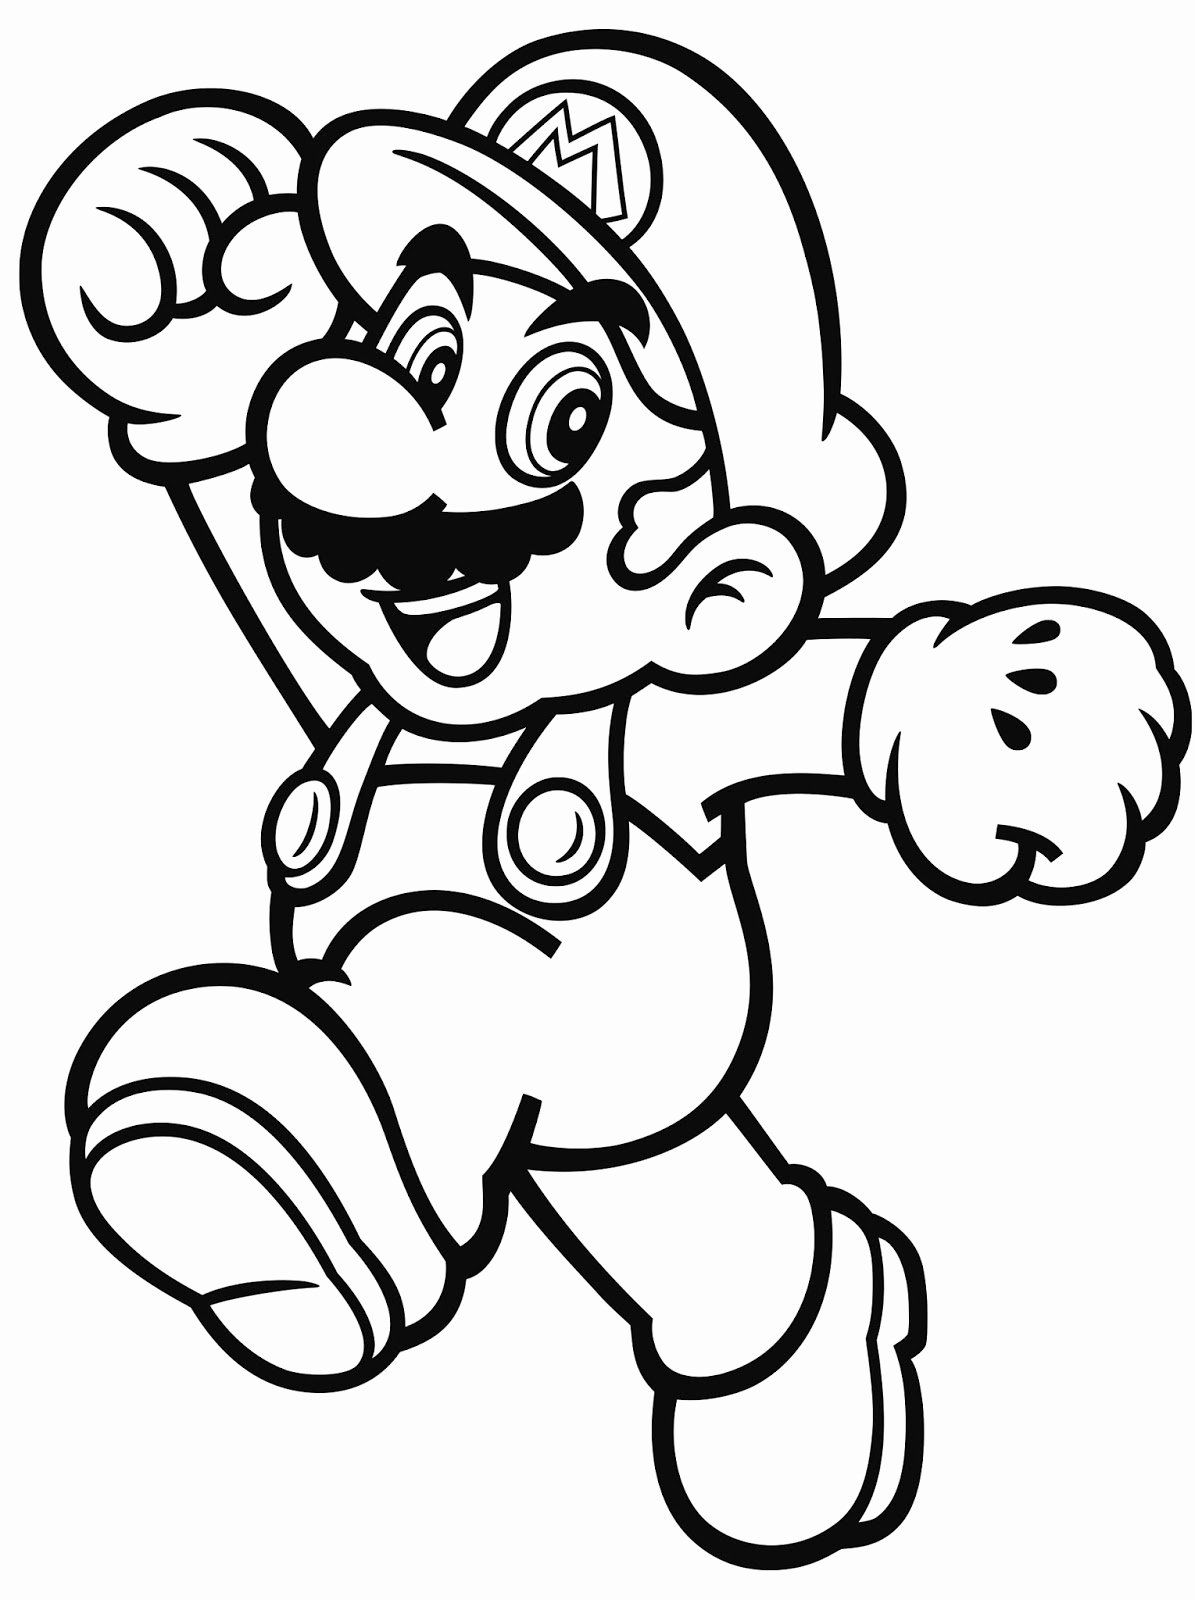 24 Super Mario Brothers Coloring Page In 2020 Super Mario